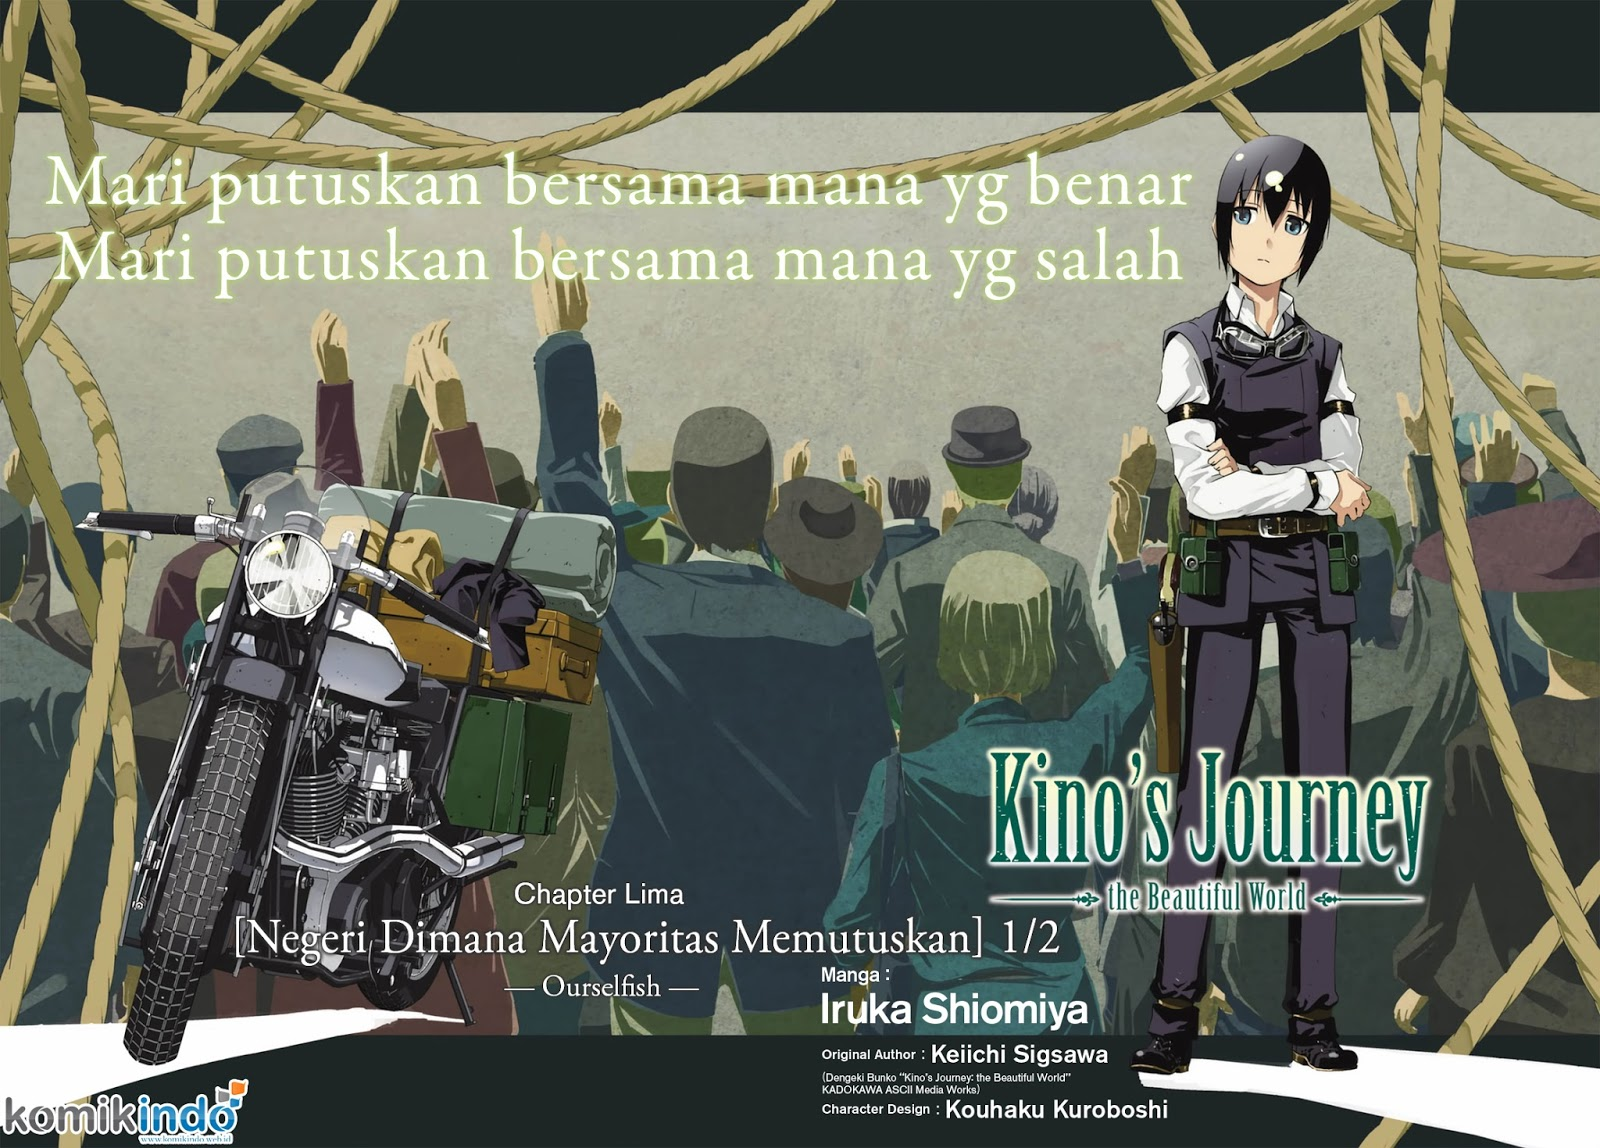 Baca Manga Kino no Tabi -The Beautiful World- (Shiomiya) Chapter 5 Bahasa Indonesia